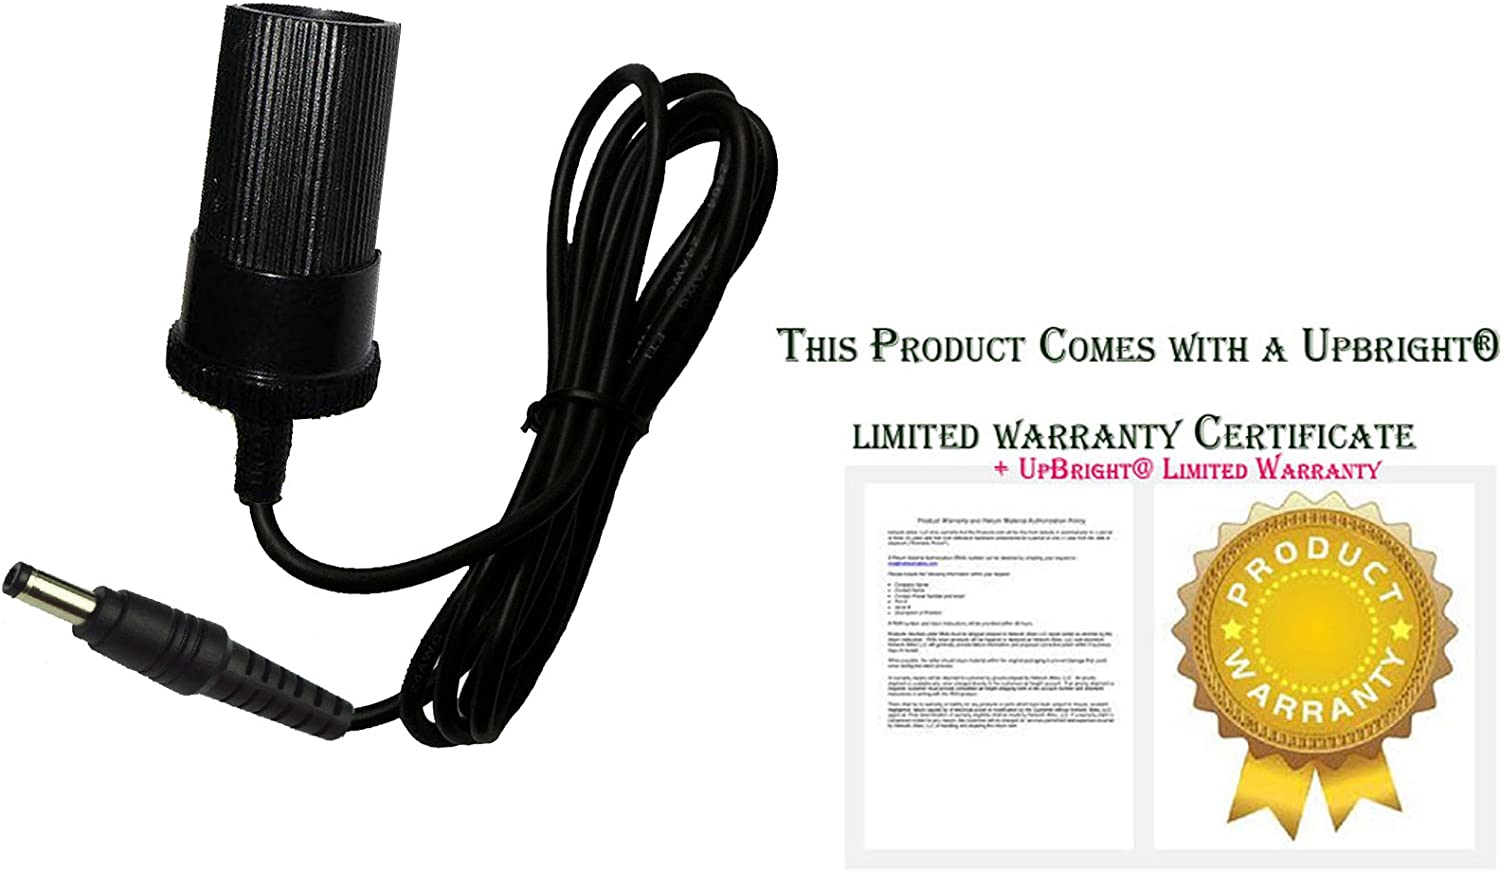 AC adapter For Antigravity Micro Start XP-10 Jump Starter Personal Power Supply